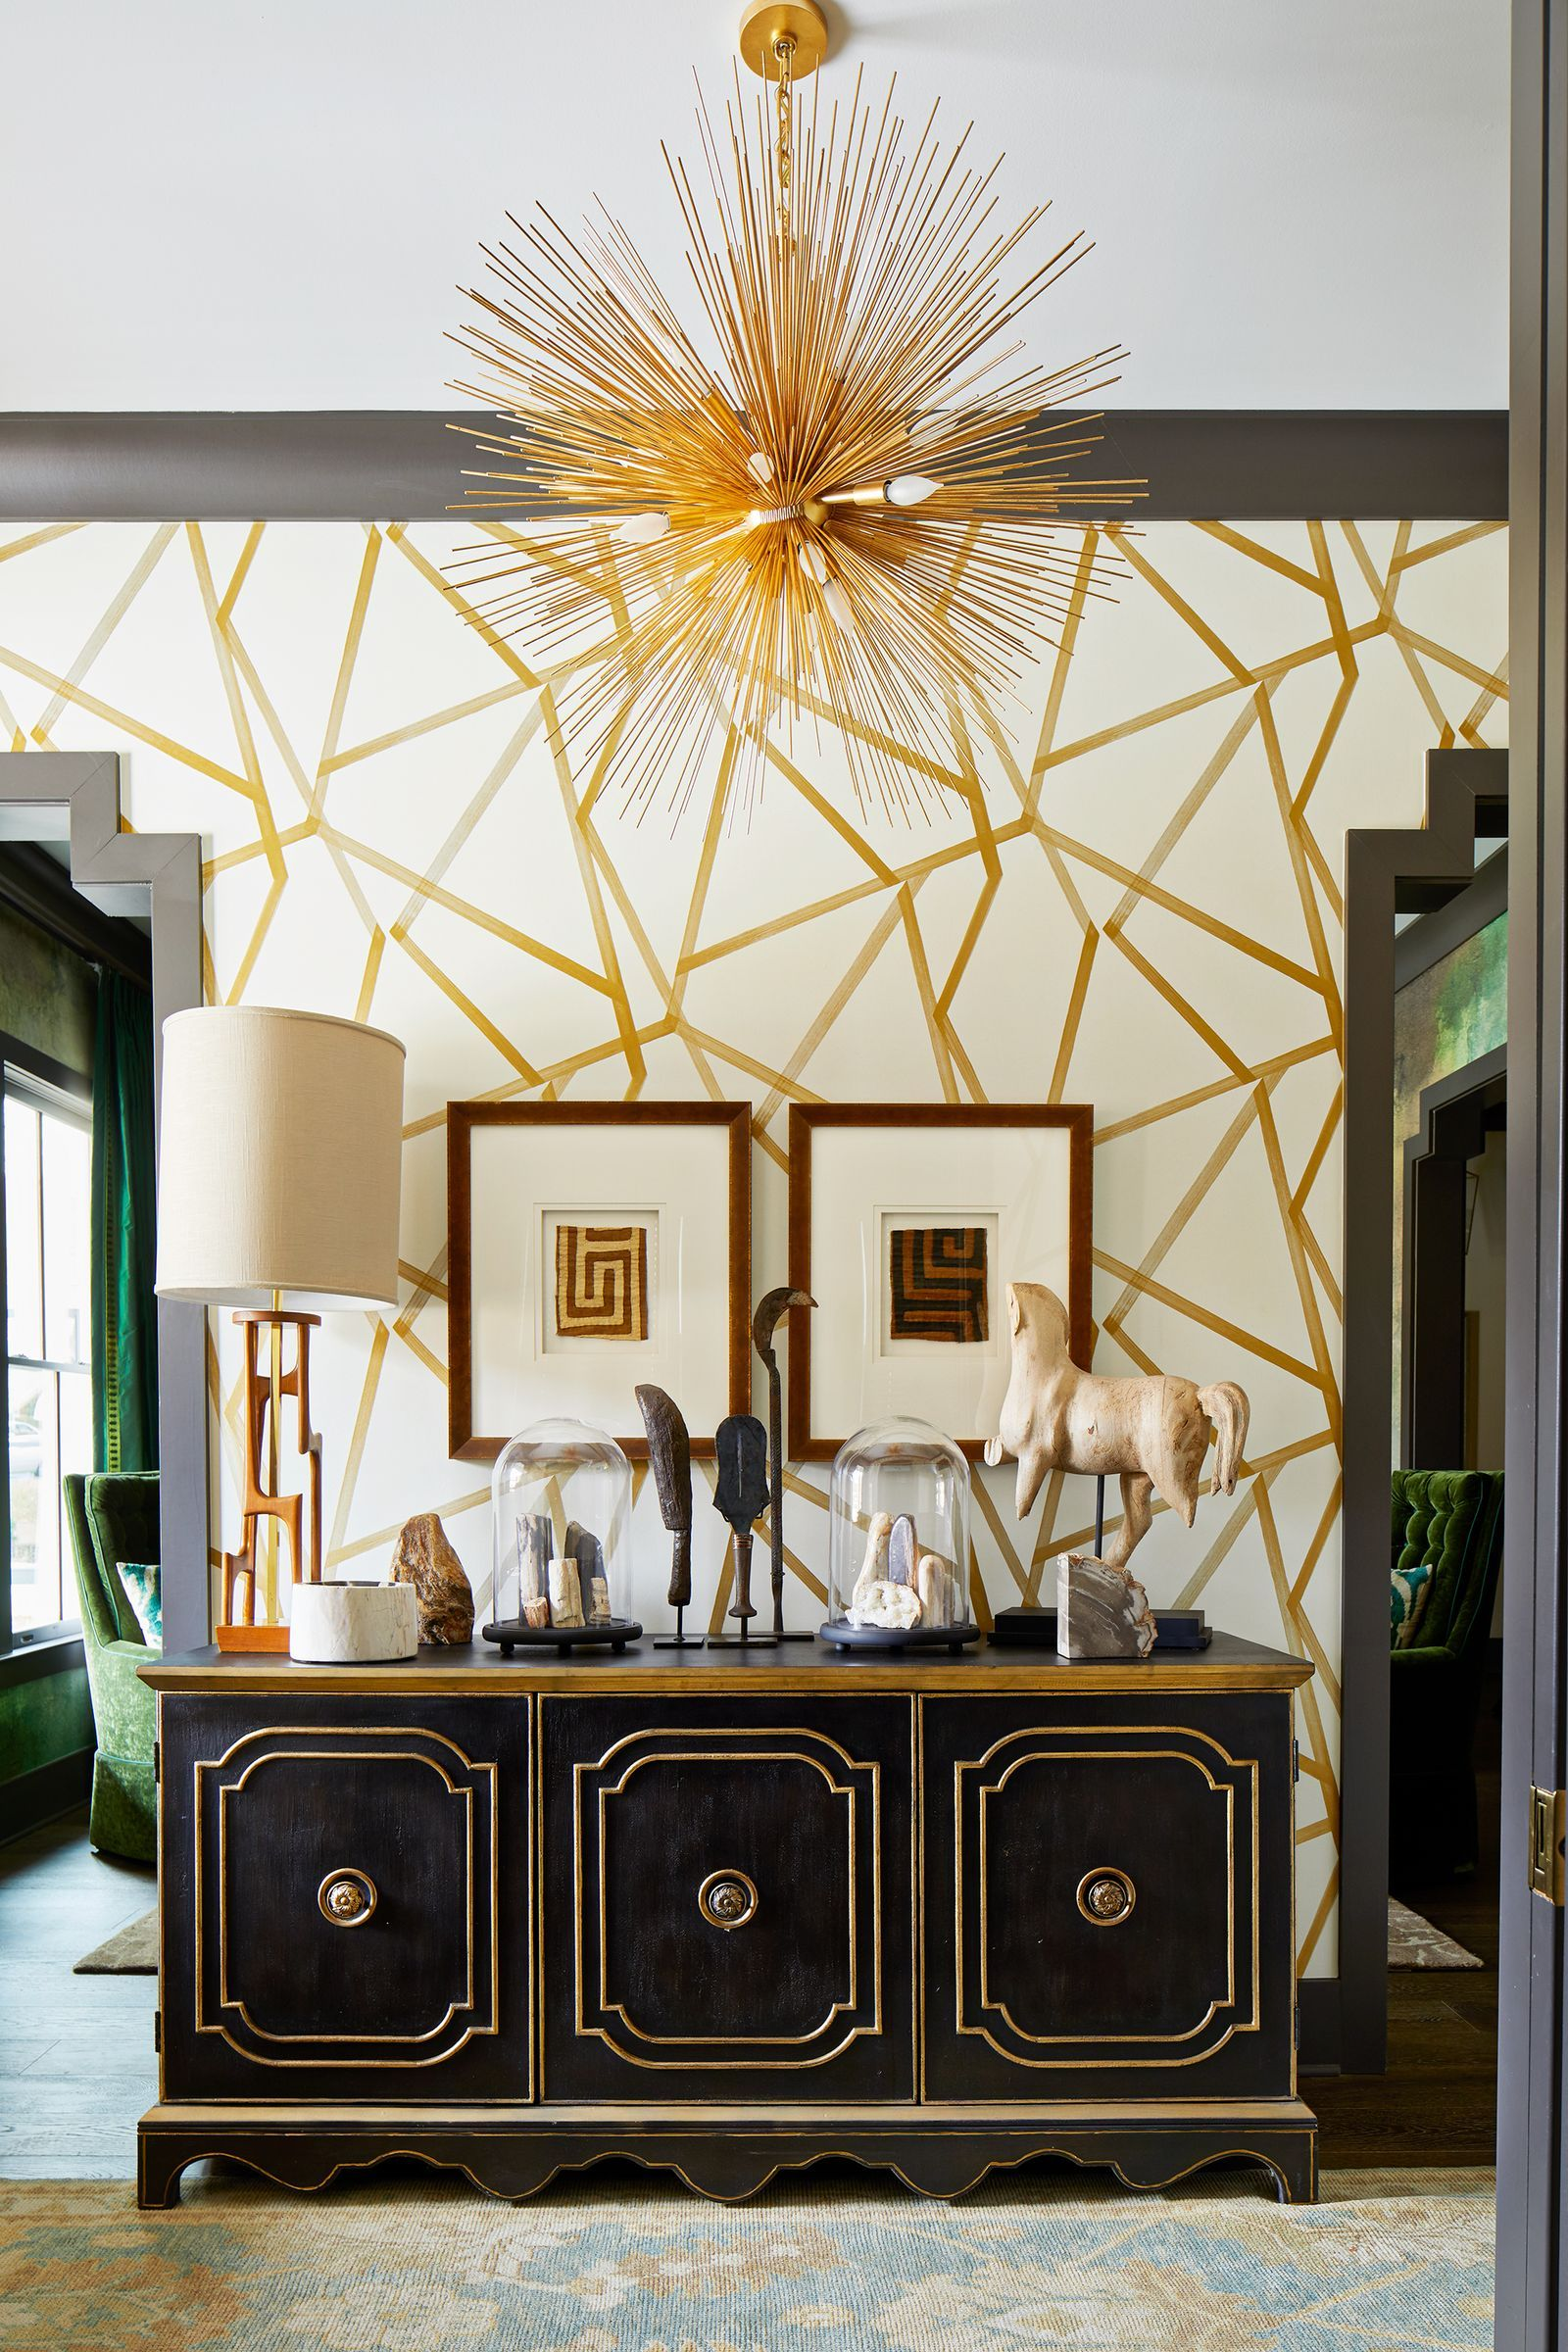 Designers Love This Clever Decorating Trick (It Takes Up